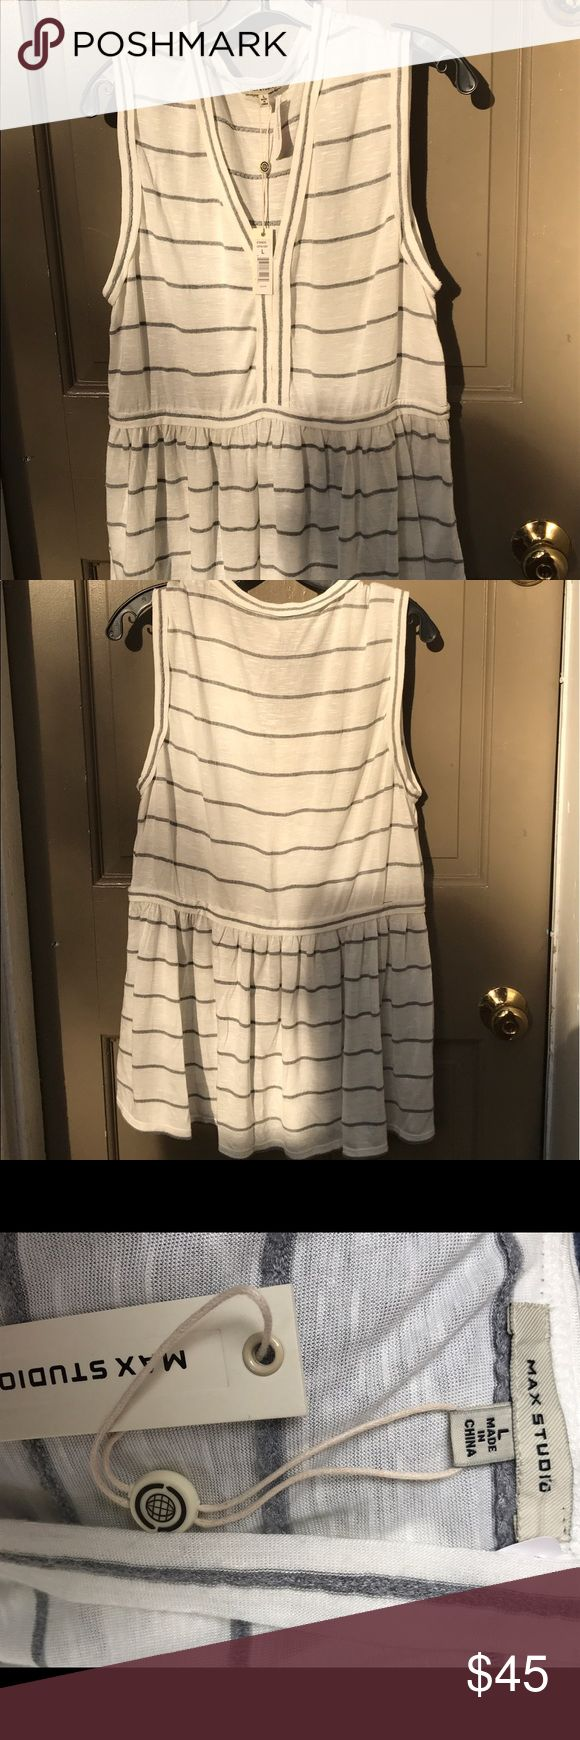 Brand new summer dress. Lightweight and flowy Super fun and easy summer dressing Max Studio. brand New! It's lightweight and great for casual summer BBQs or everyday wearing! Max Studio Dresses Maxi